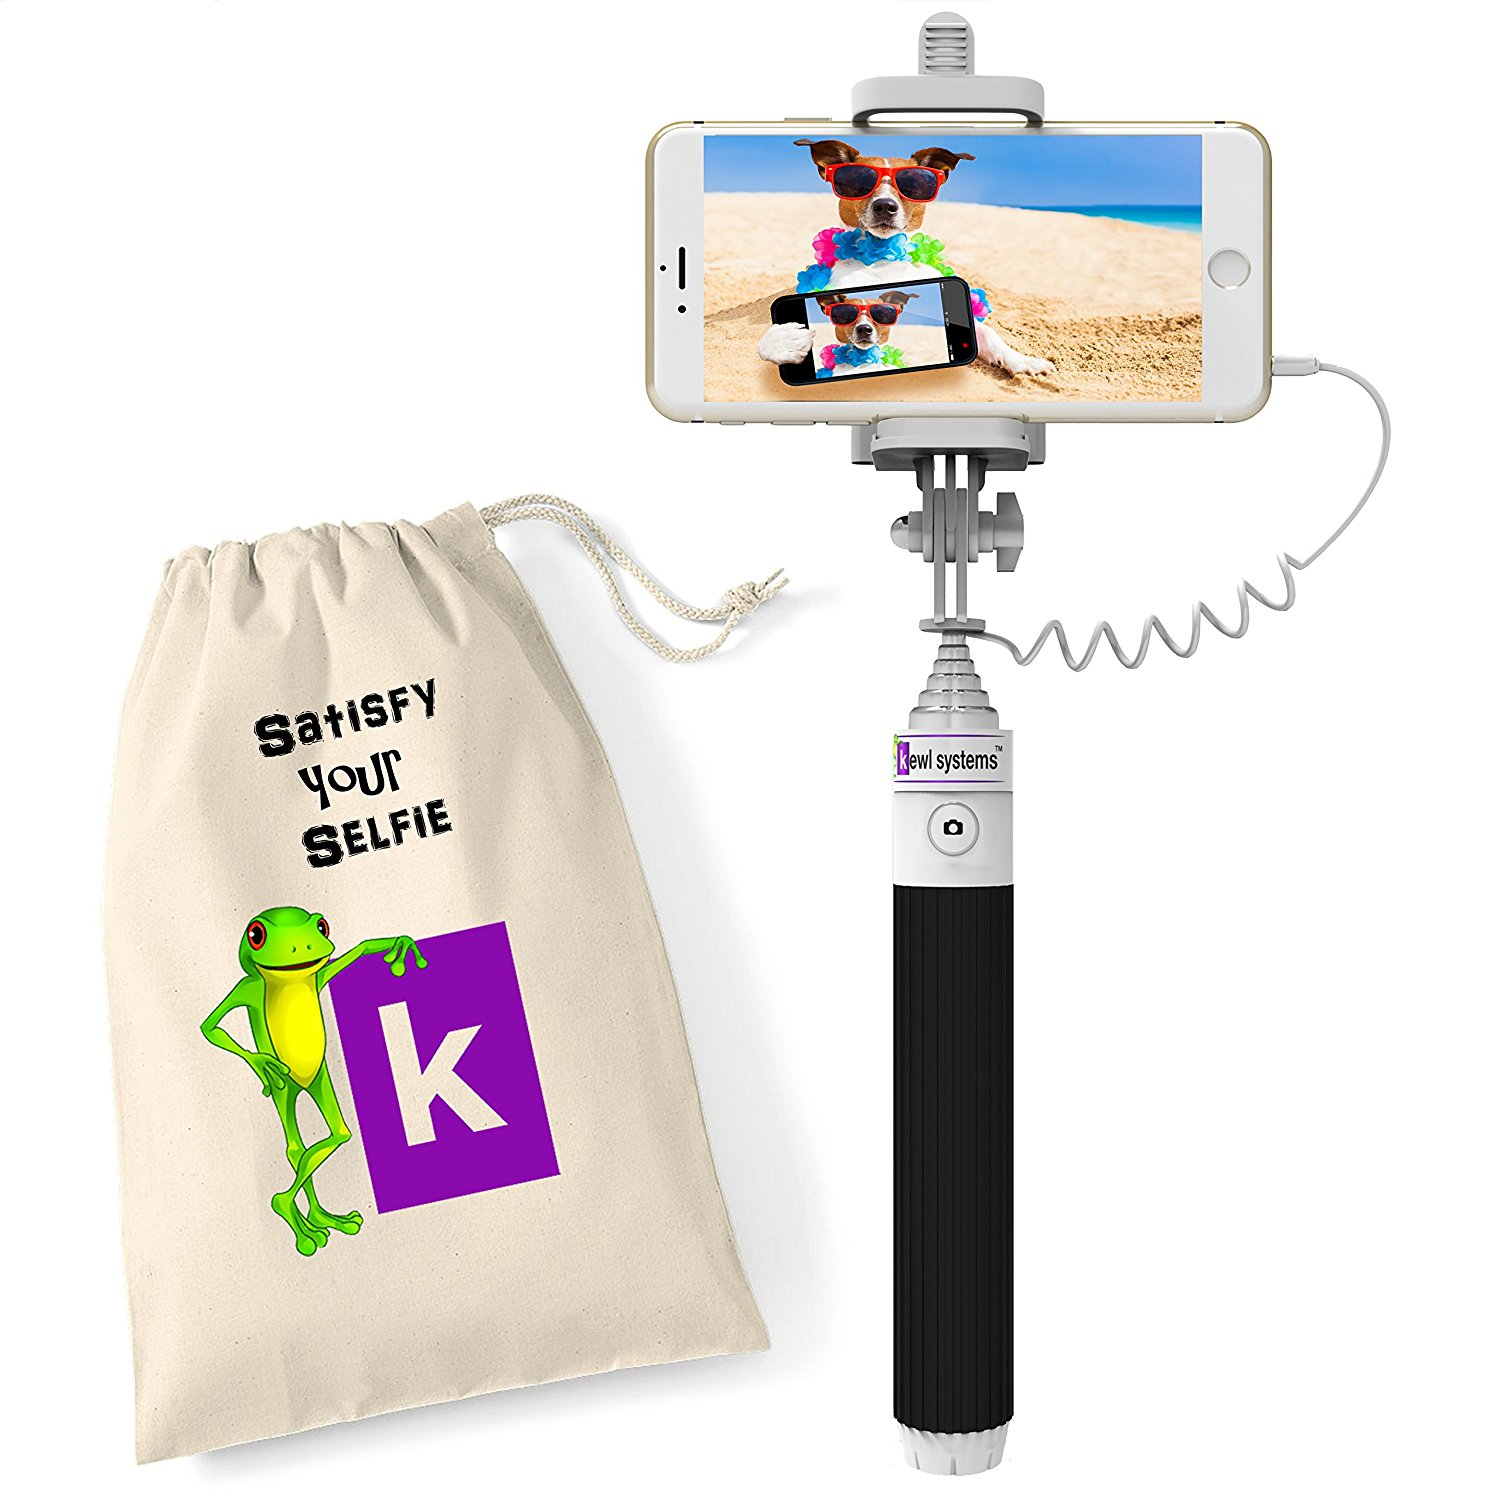 5 Join the Fun with a Compact Selfie Stick Battery-free